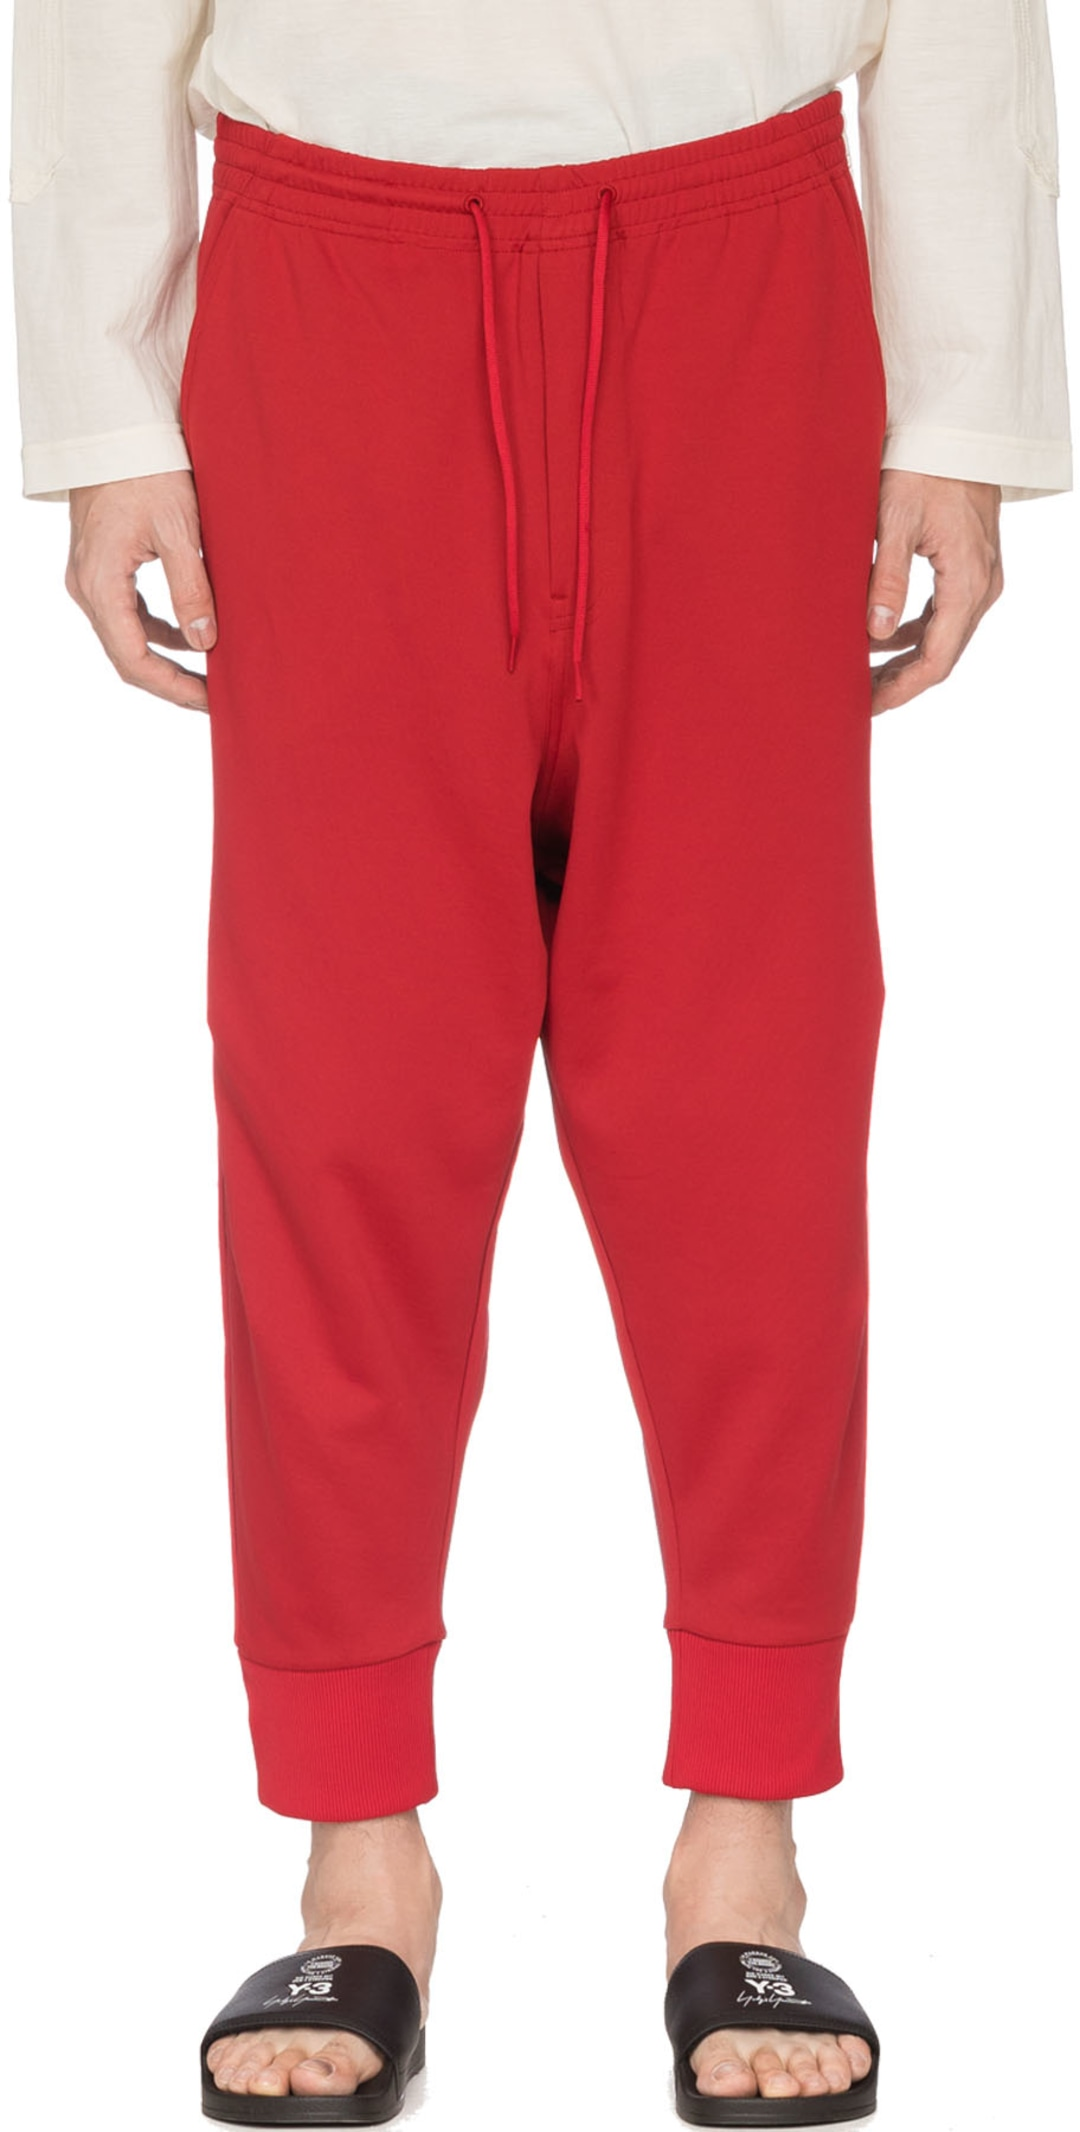 180d14fb9 Y-3  3-Stripes Track Pants - Chili Pepper Red